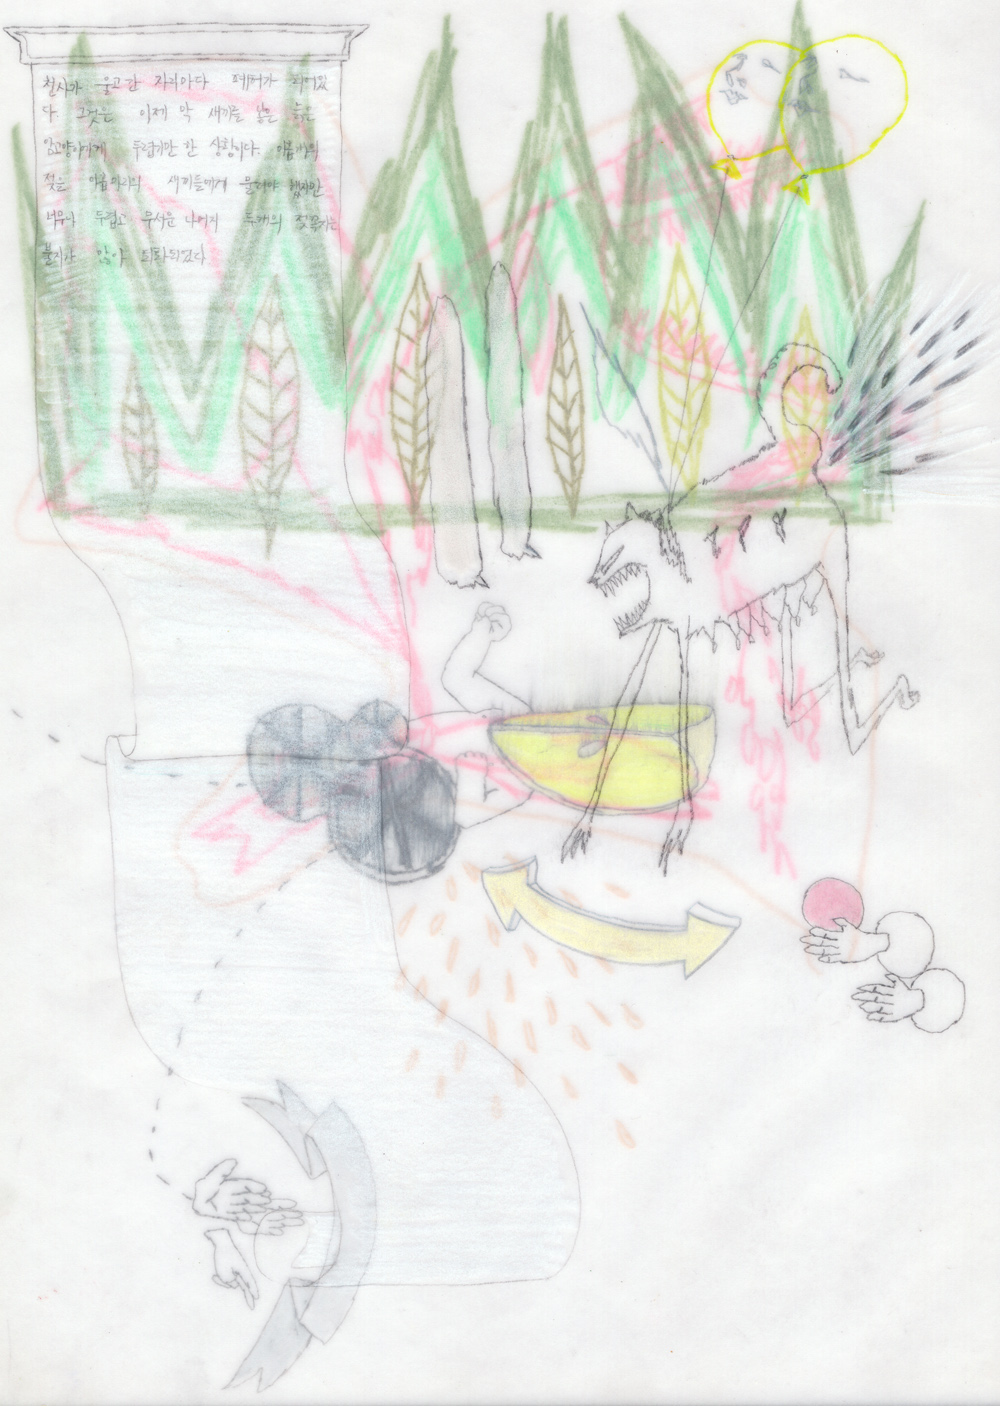 Vulnerable drawing #161    2012, Coloured pencil on tracing paper, 30x21cm (3ea)